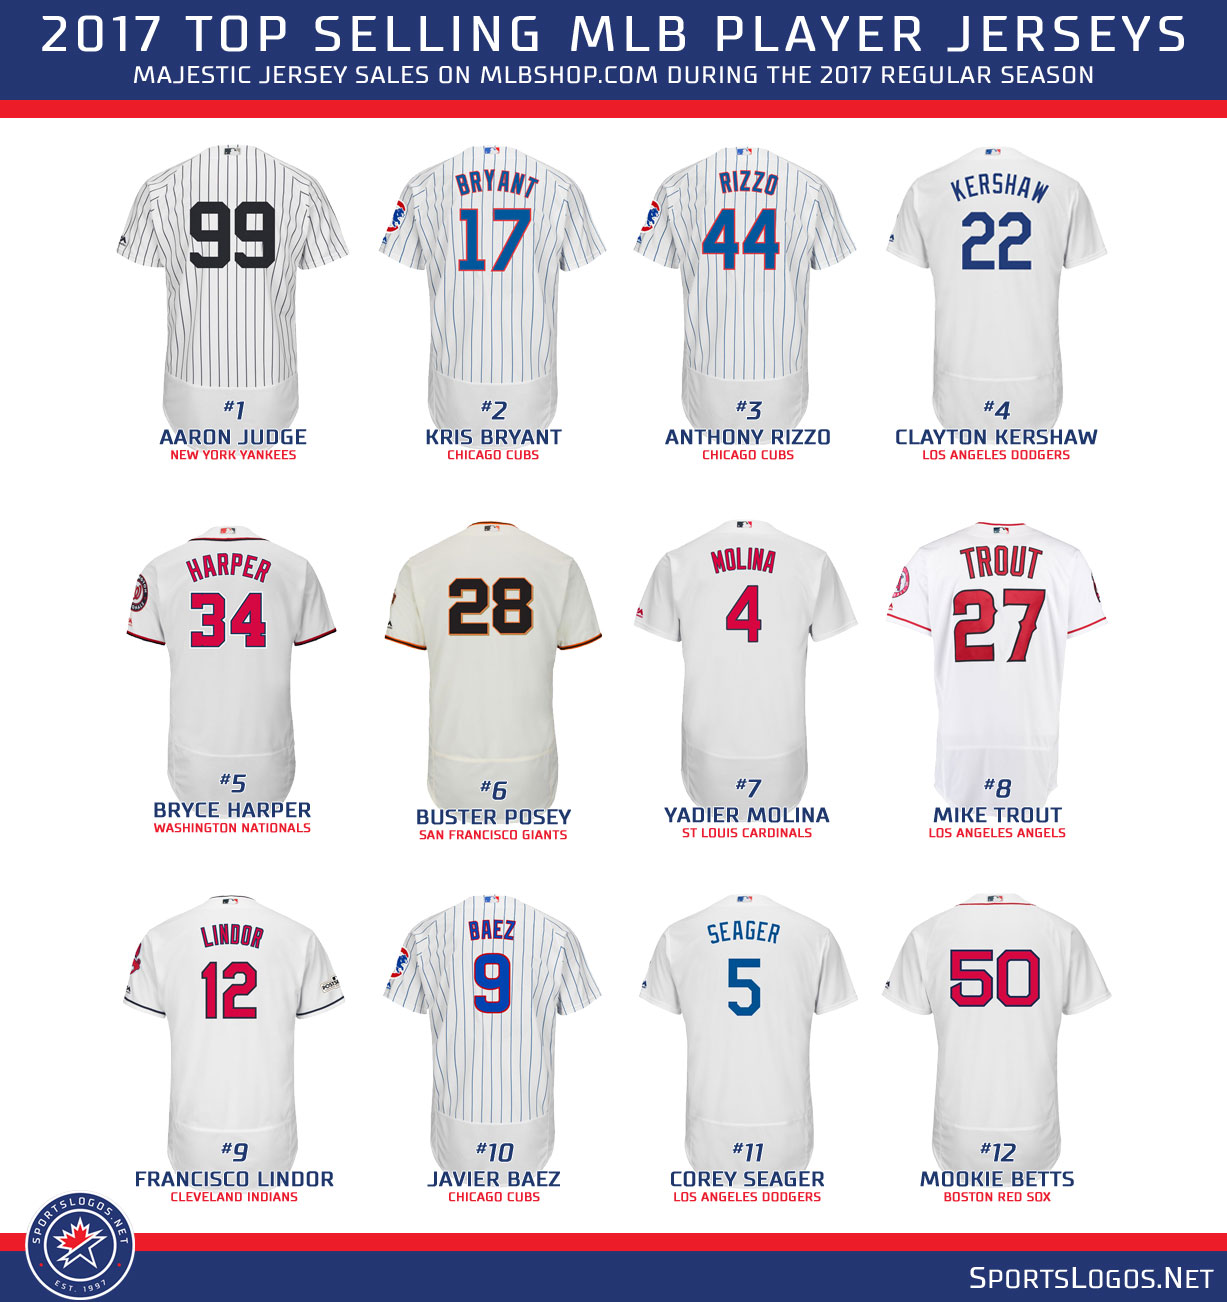 757f2c59 2017 mlb top selling player jerseys | Chris Creamer's SportsLogos ...